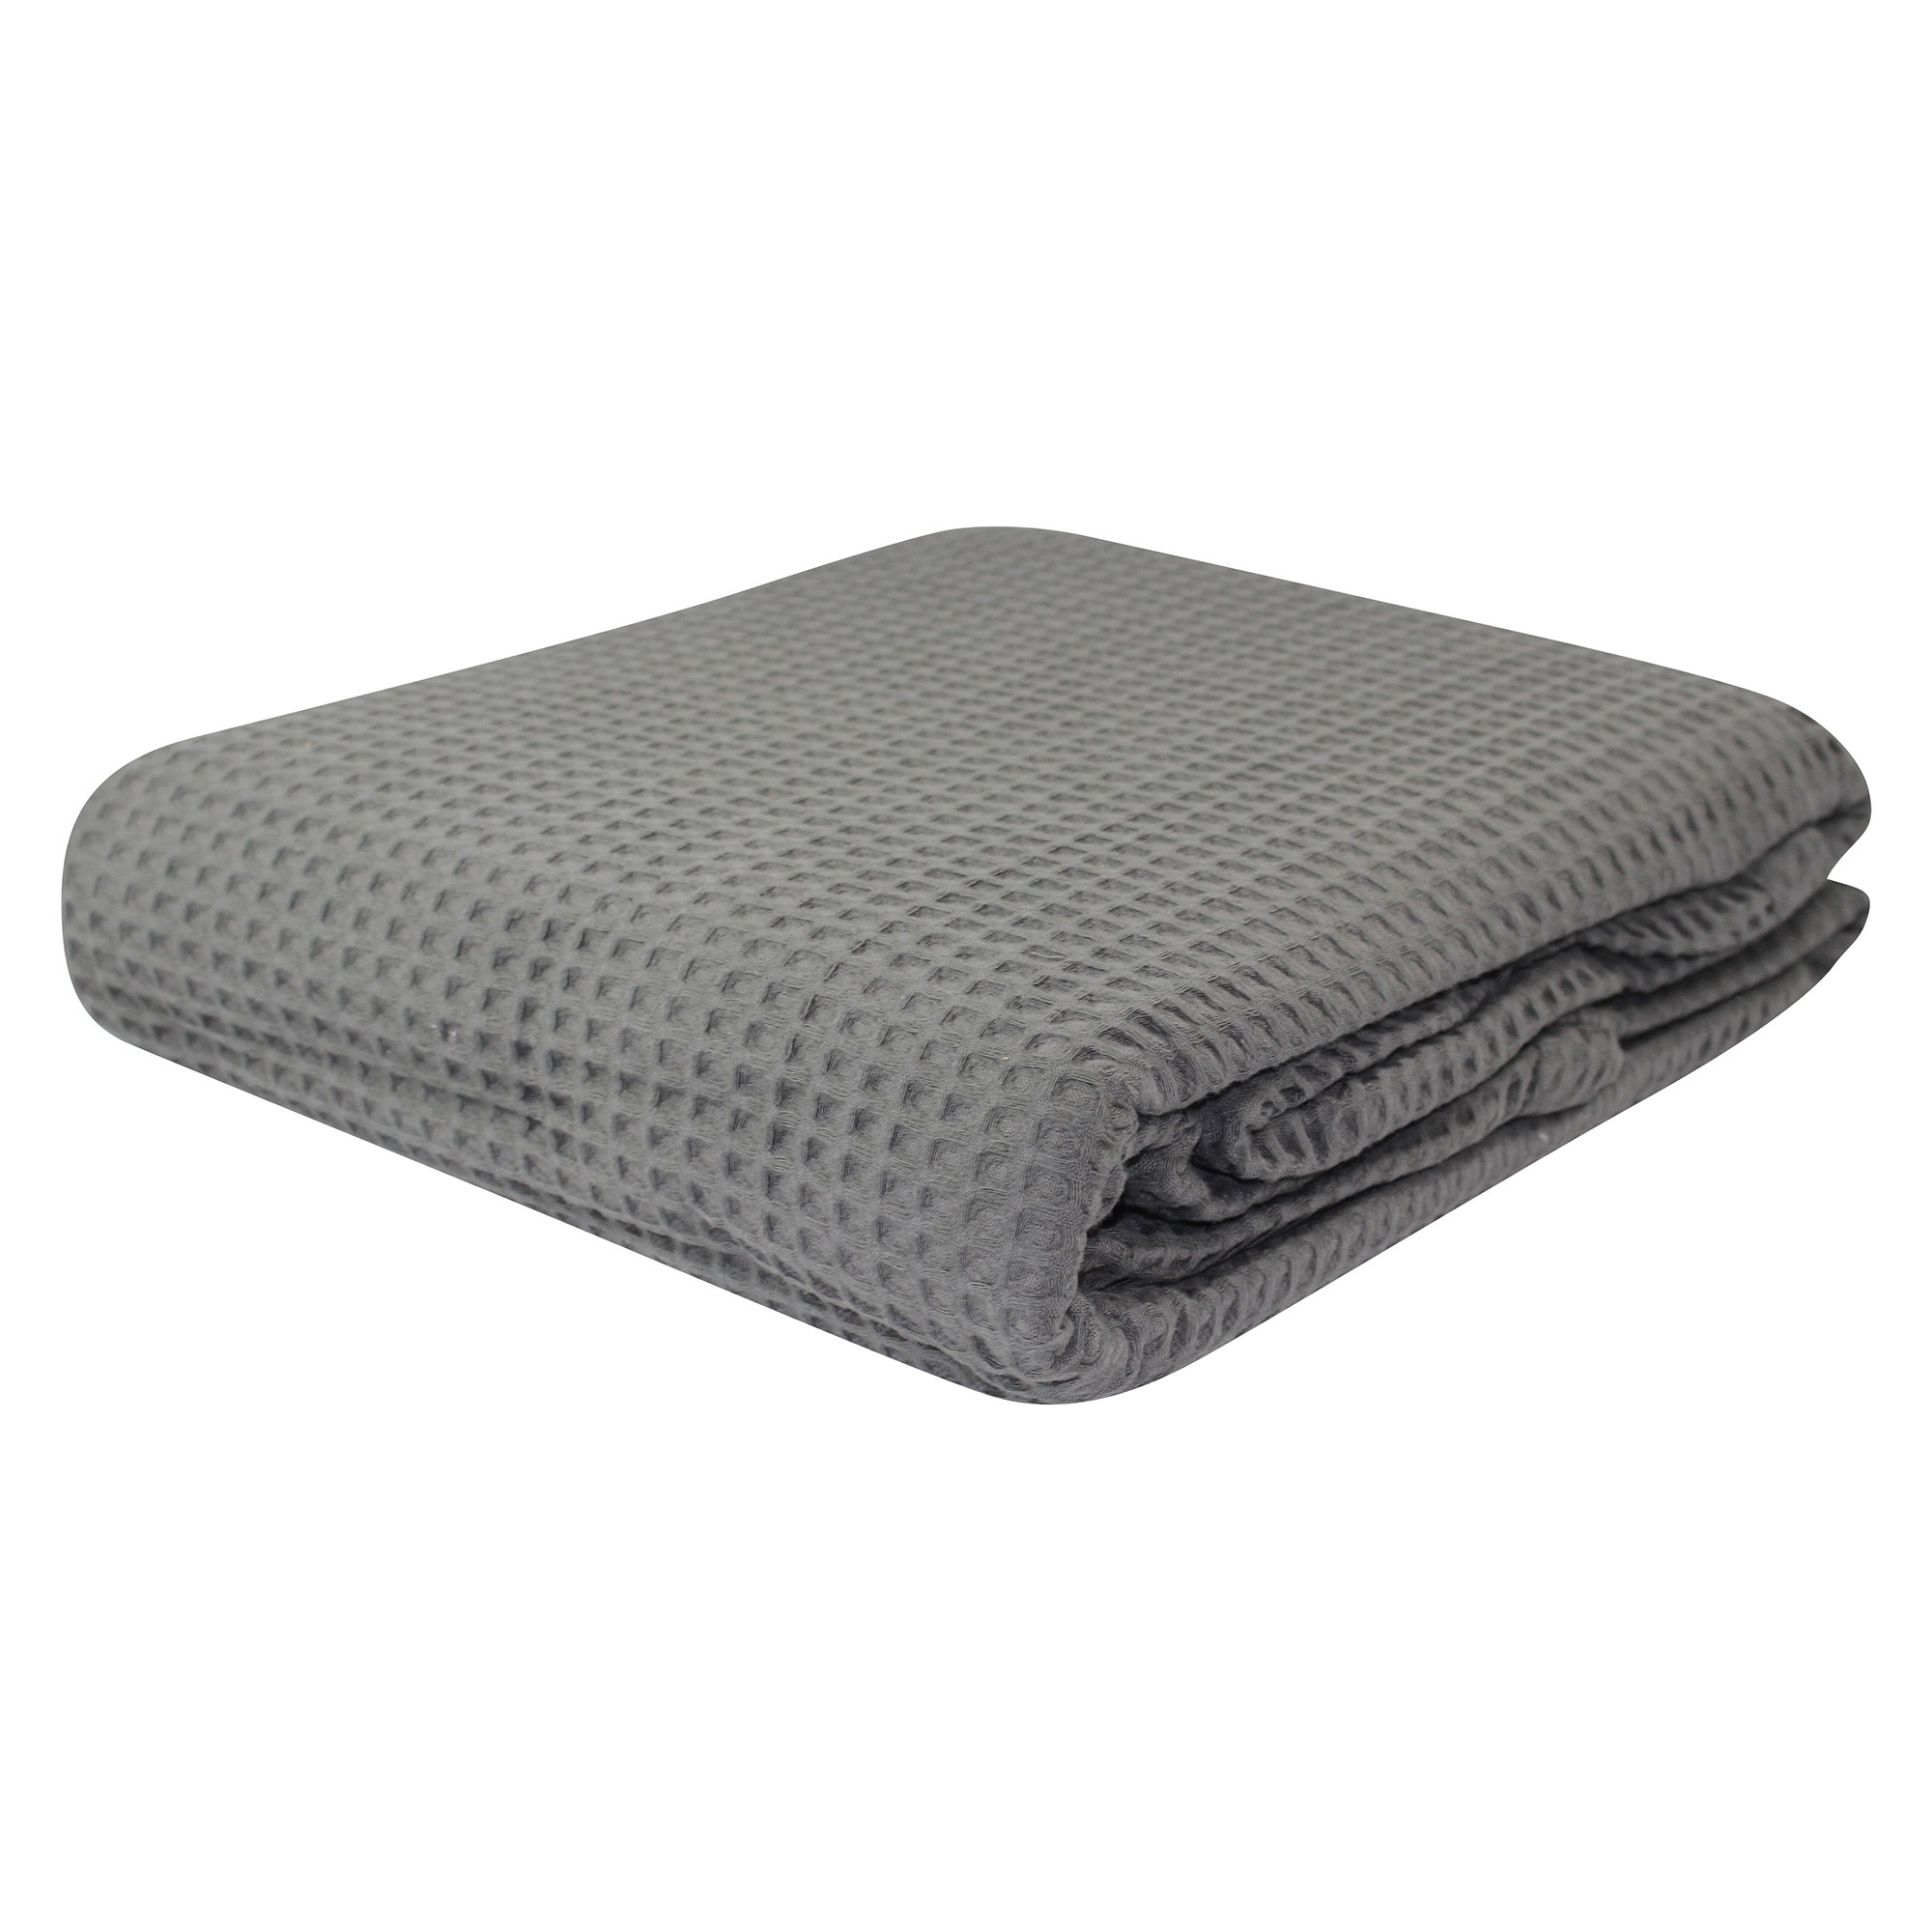 Bas Phillips Regatta Egyptian Cotton Waffle Blanket, Queen, Charcoal